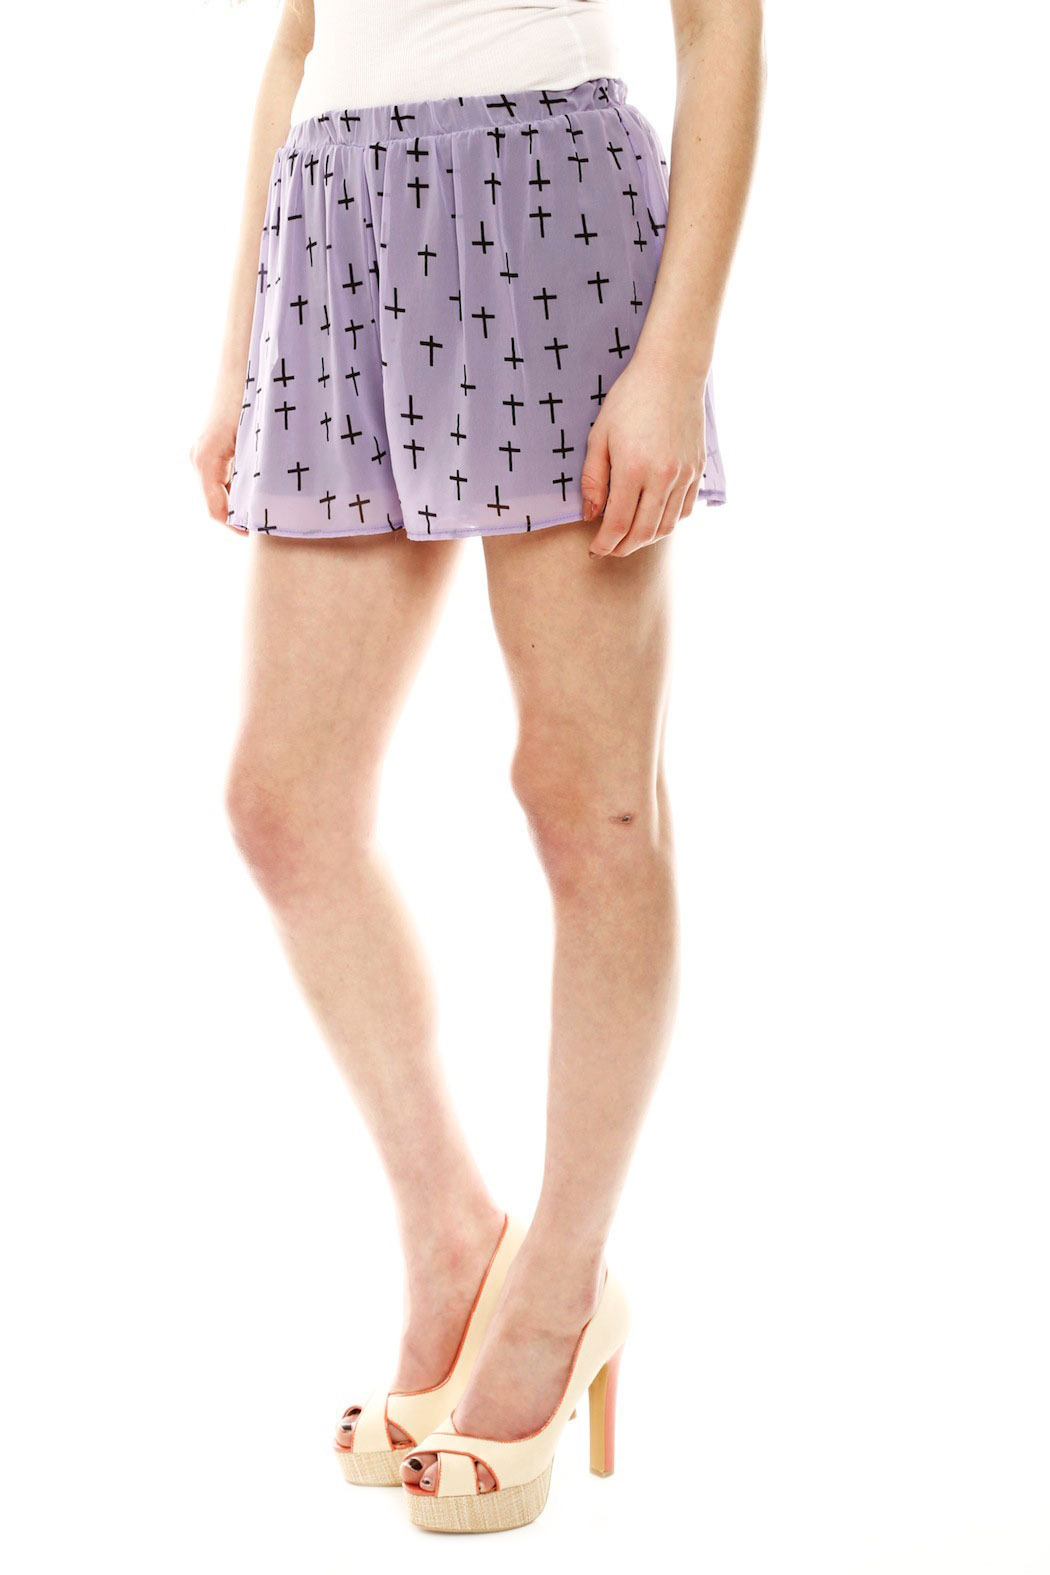 Audrey 3+1 Cross Print Shorts - Side Cropped Image